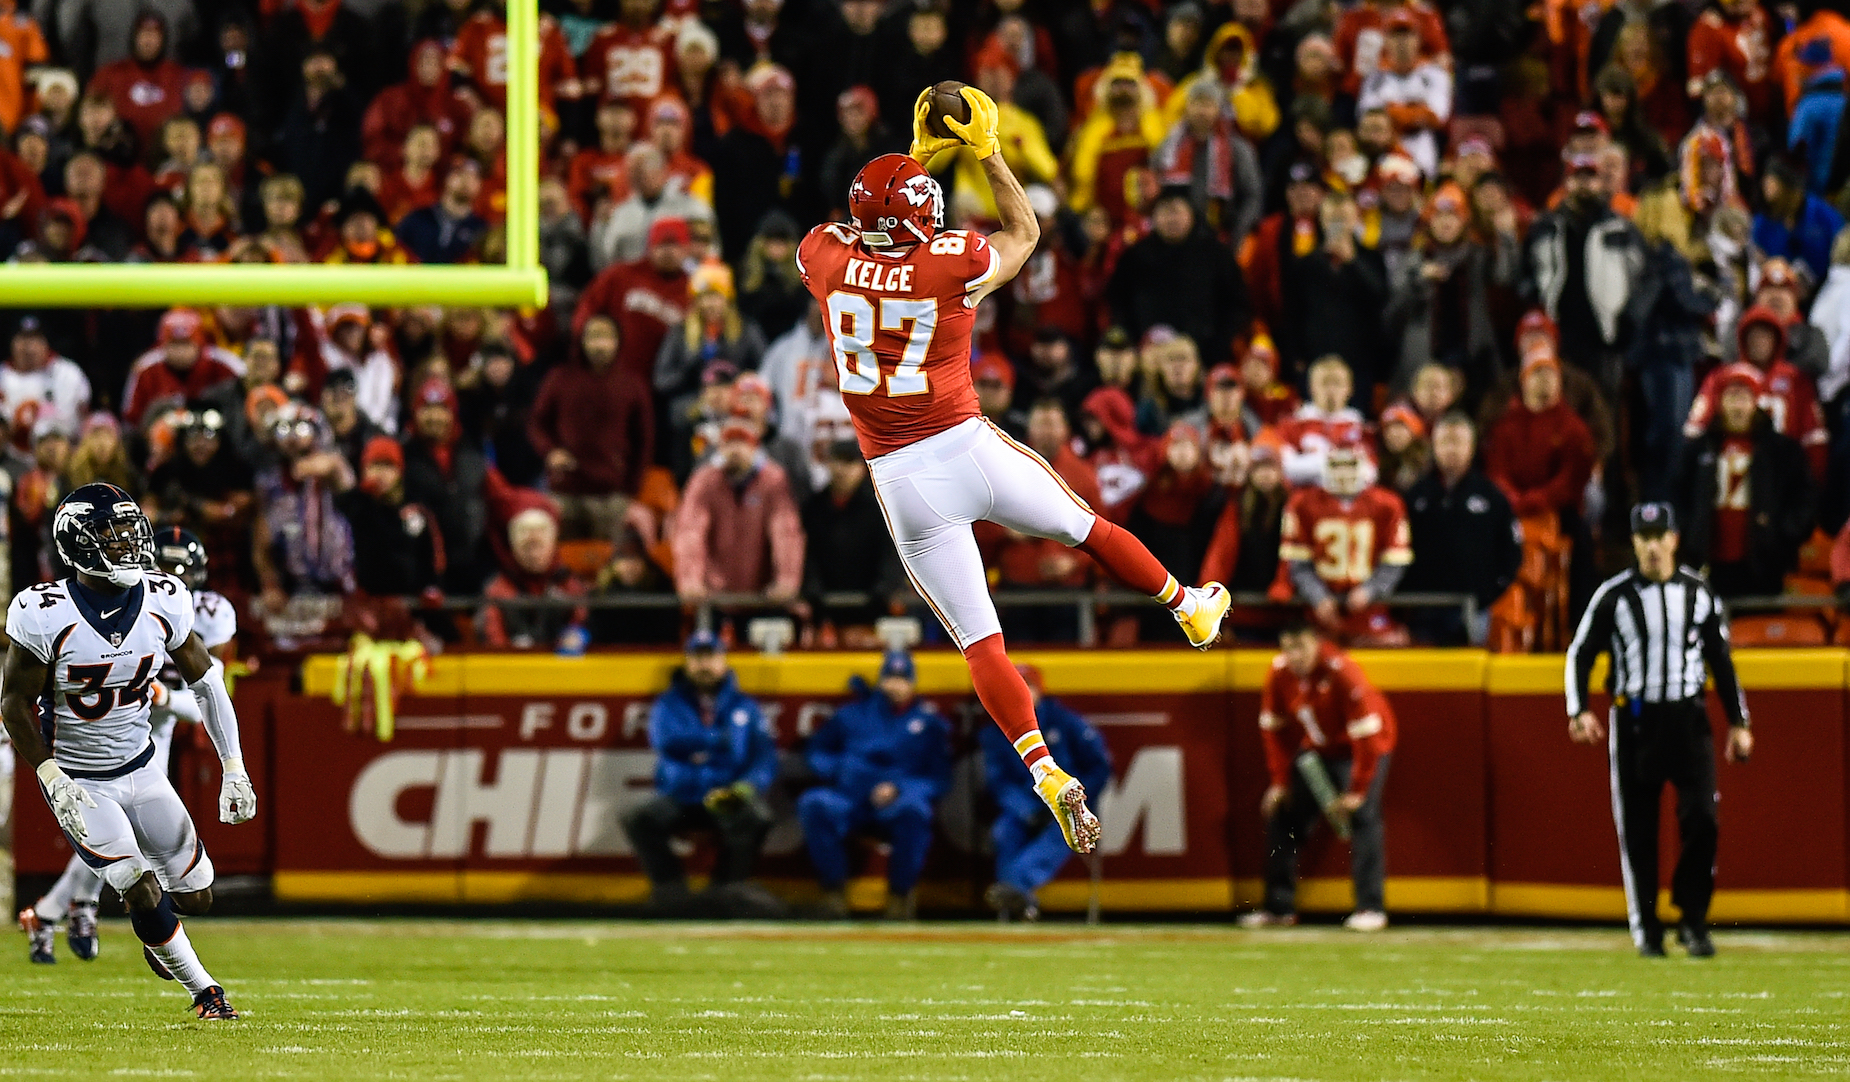 Chiefs tight end Travis Kelce could have ruined his football career with marijuana before his brother stepped in.